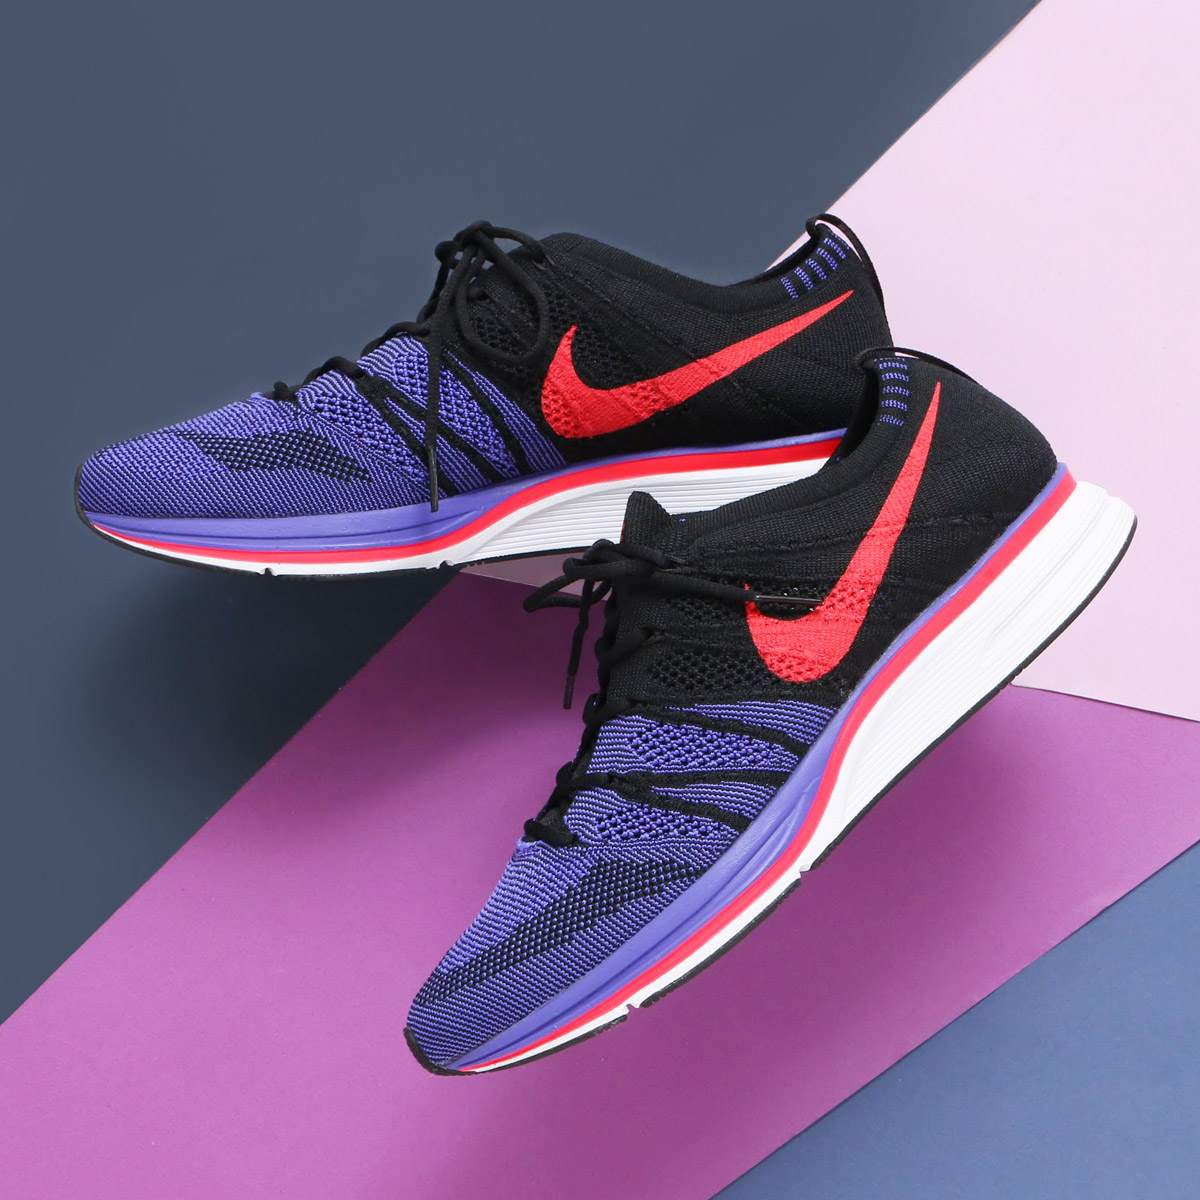 04e1b0ebeb9abe atmos pink  NIKE FLYKNIT TRAINER (Nike fried food knit trainer) (BLACK SIREN  RED-WHITE) 18SP-S